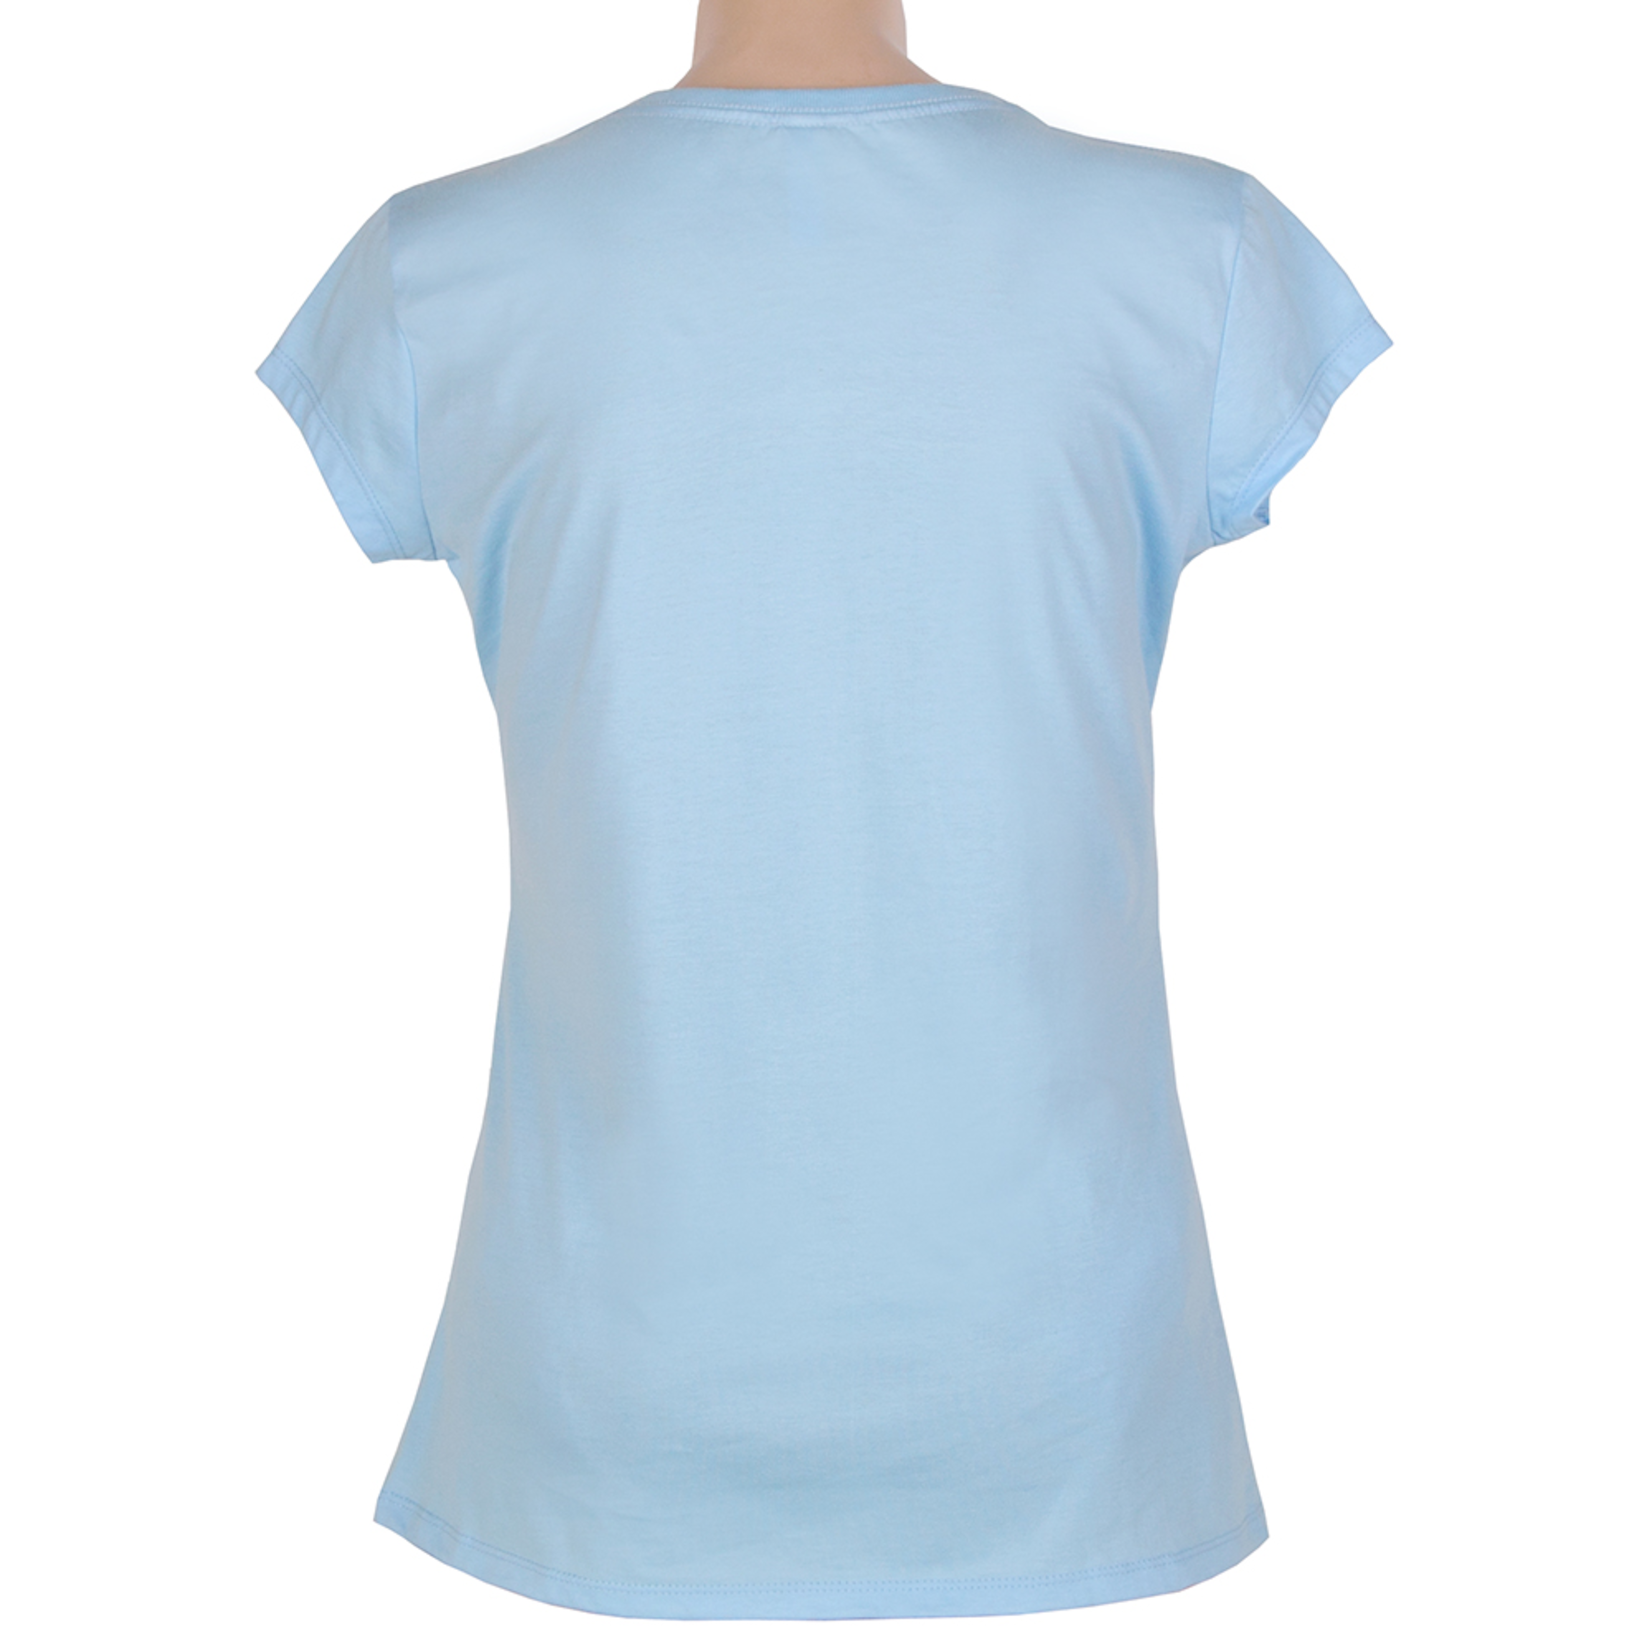 Clothing Tshirt - Fitted - Classic Sydney Sky Blue